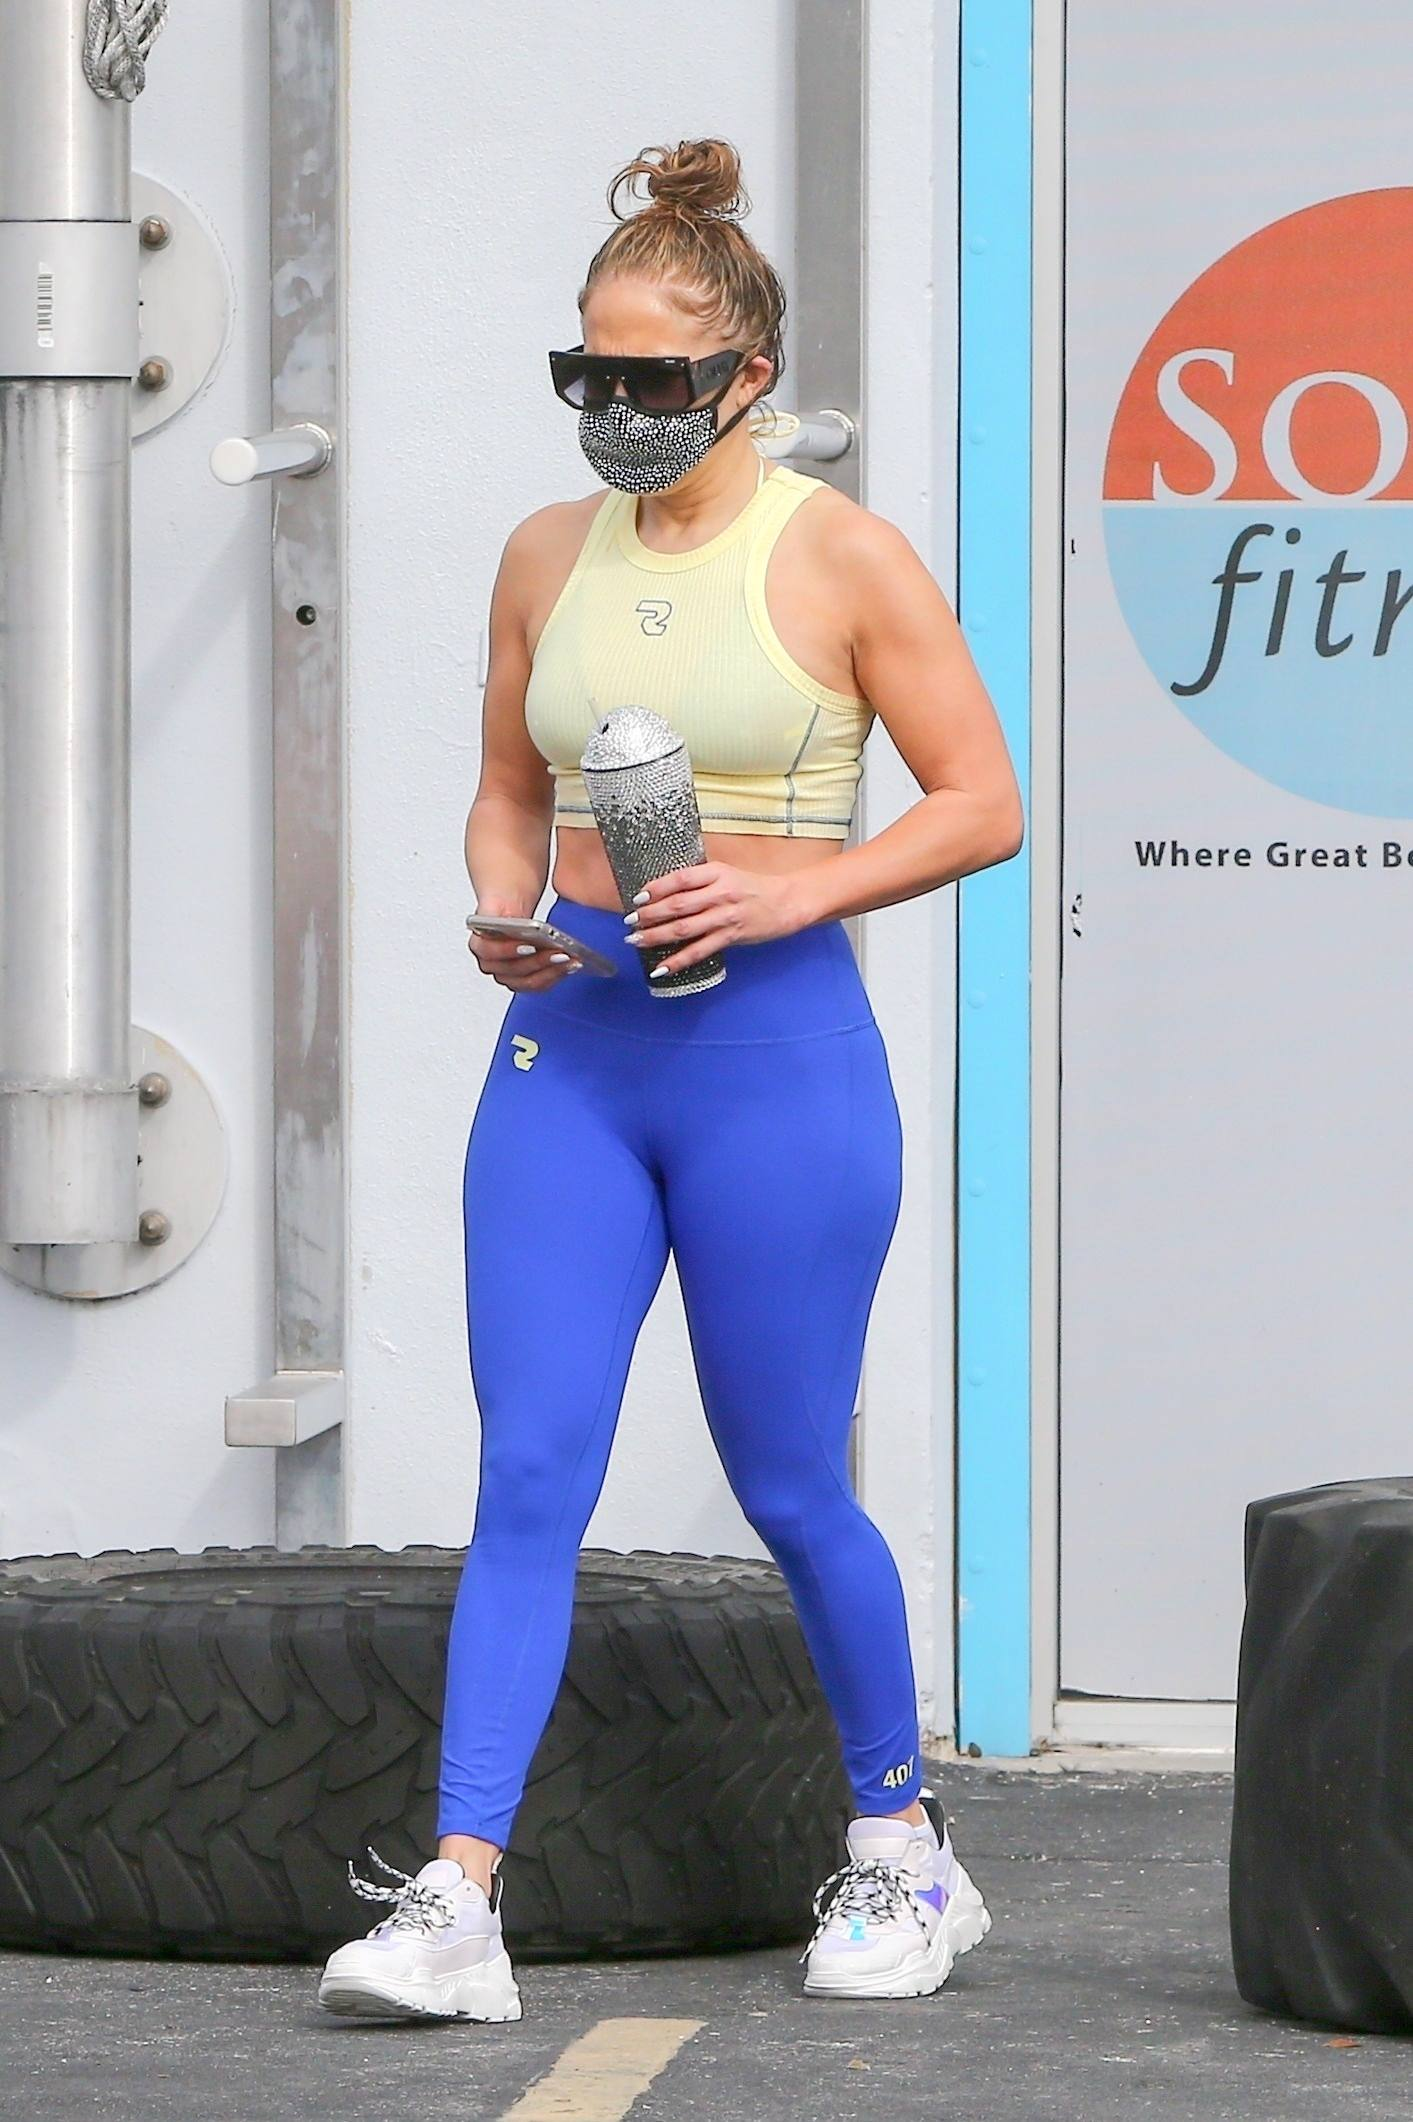 Jennifer Lopez Ass in Tight Red #Leggings Out in #Miami #